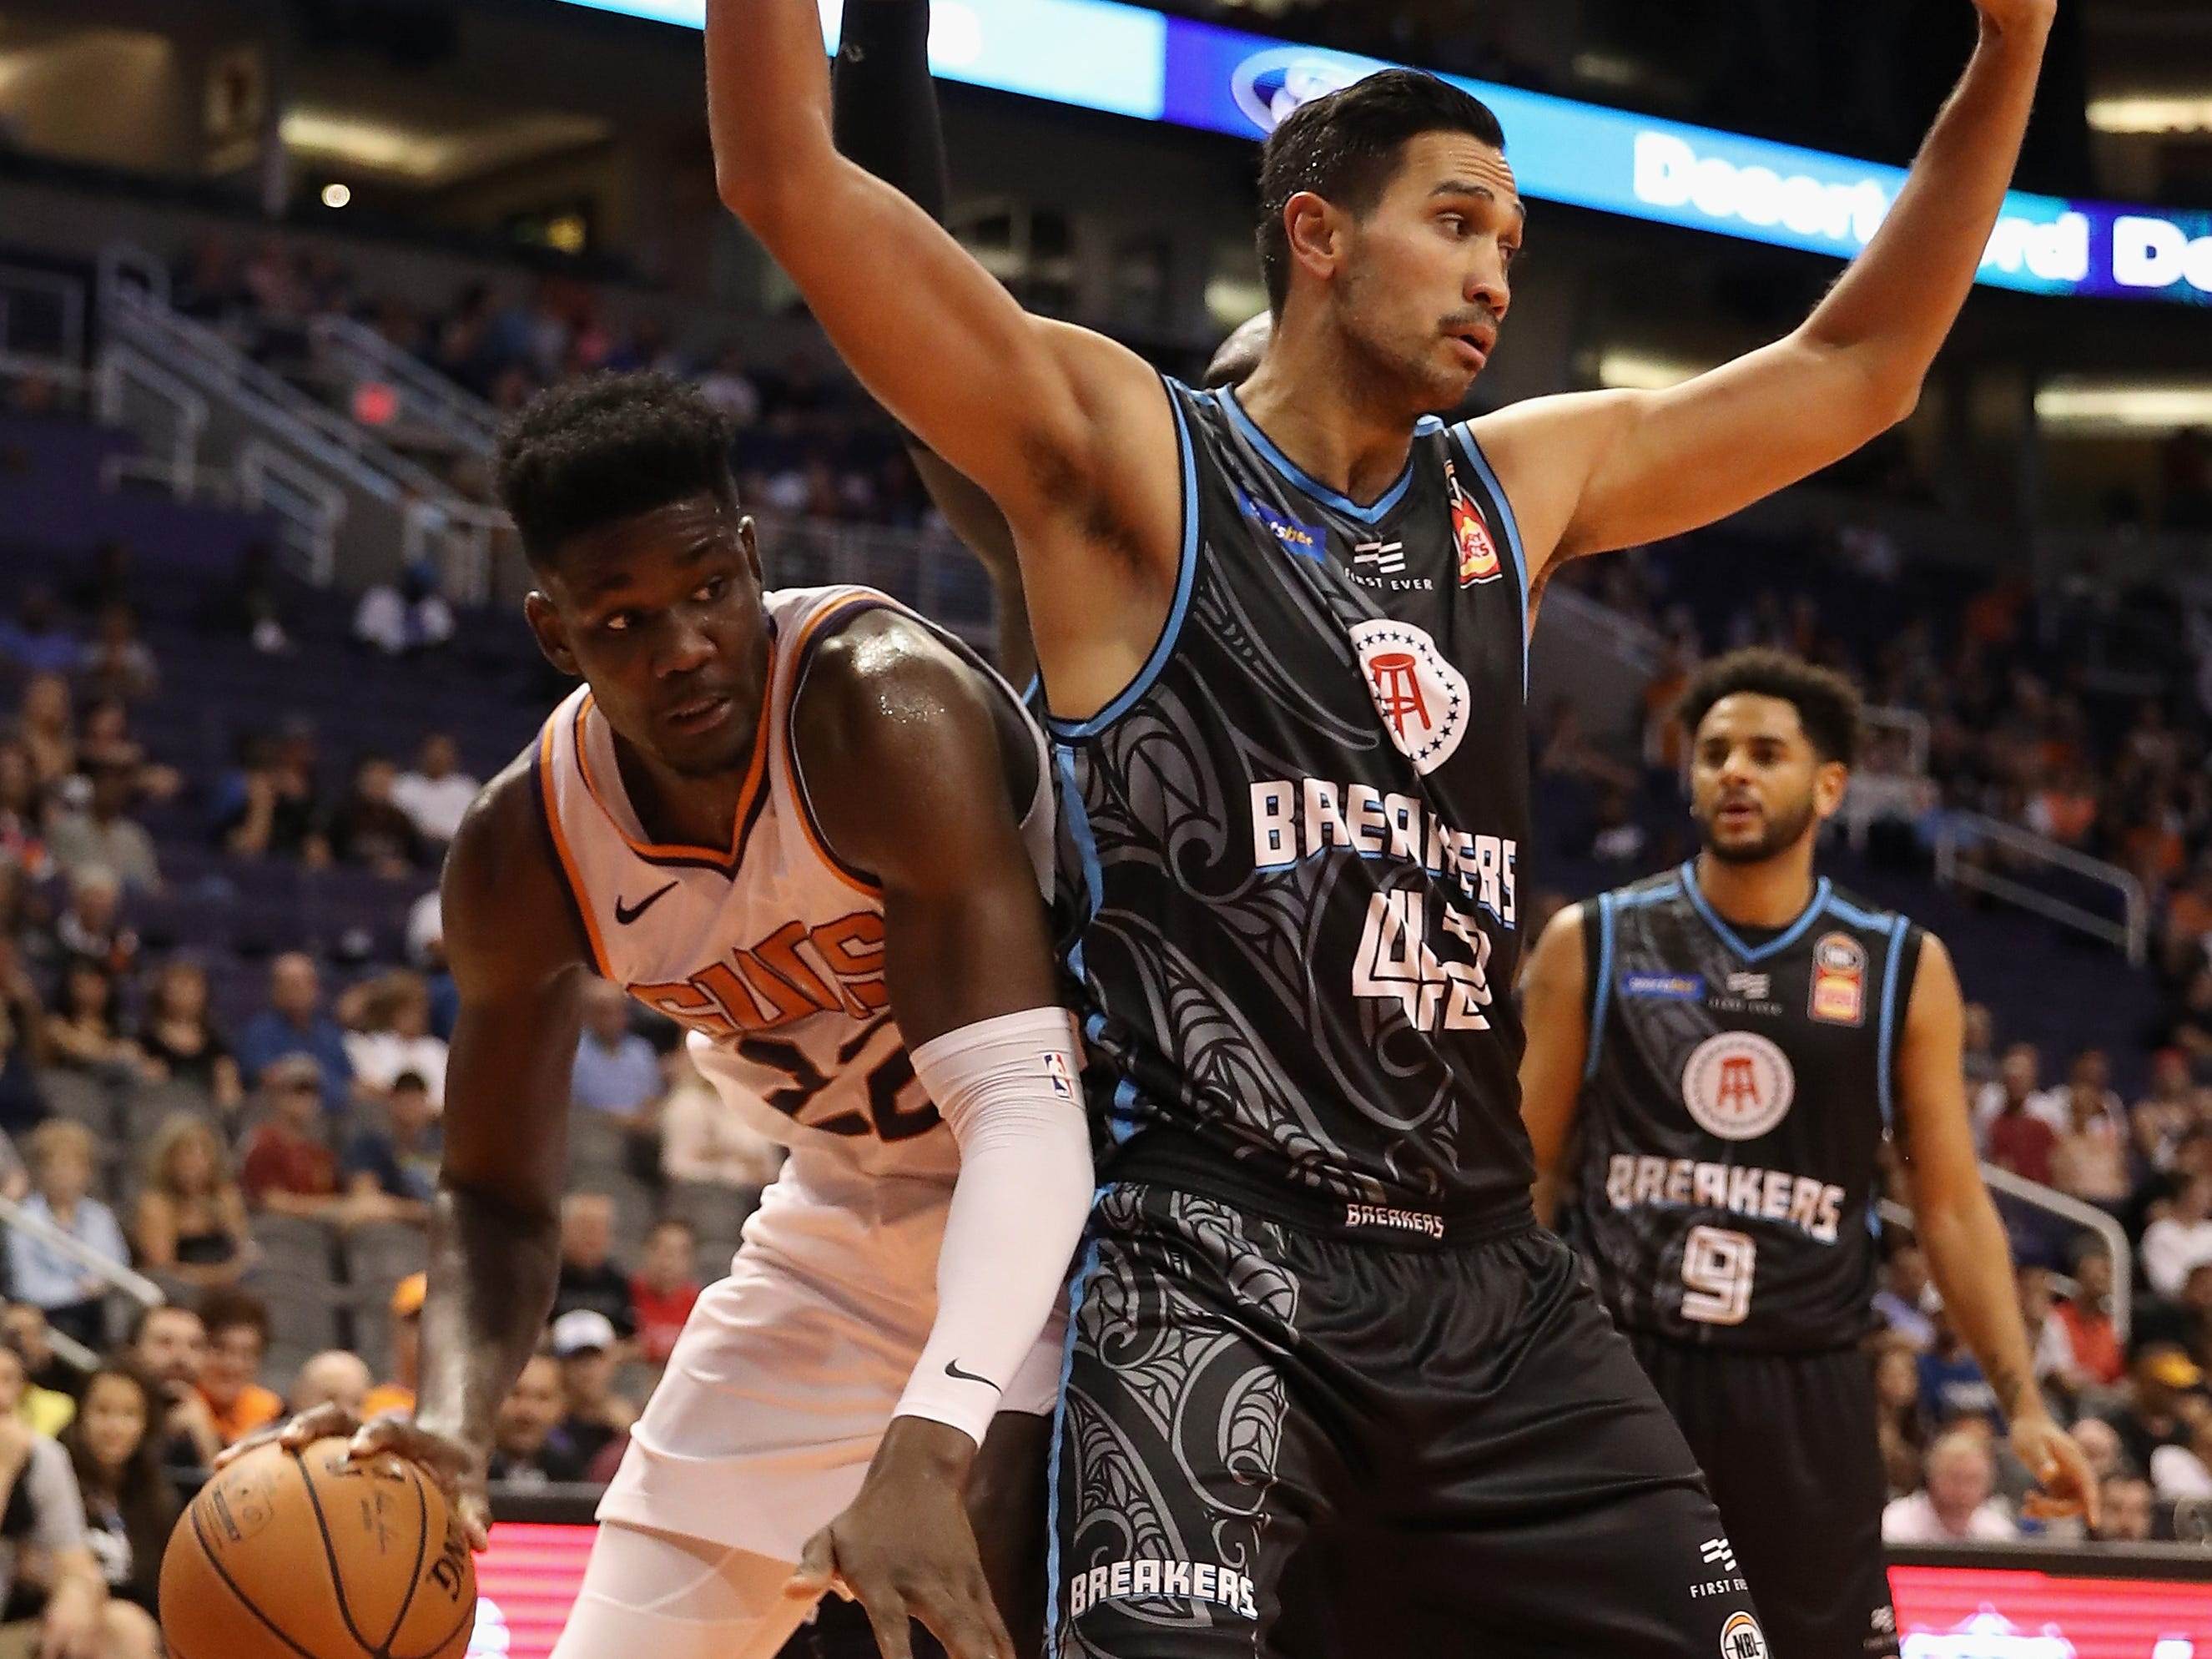 PHOENIX, AZ - OCTOBER 03:  Deandre Ayton #22 of the Phoenix Suns handles the ball against Tai Wesley #42 of the New Zealand Breakers during the first half of the NBA game at Talking Stick Resort Arena on October 3, 2018 in Phoenix, Arizona.  NOTE TO USER: User expressly acknowledges and agrees that, by downloading and or using this photograph, User is consenting to the terms and conditions of the Getty Images License Agreement.  (Photo by Christian Petersen/Getty Images)